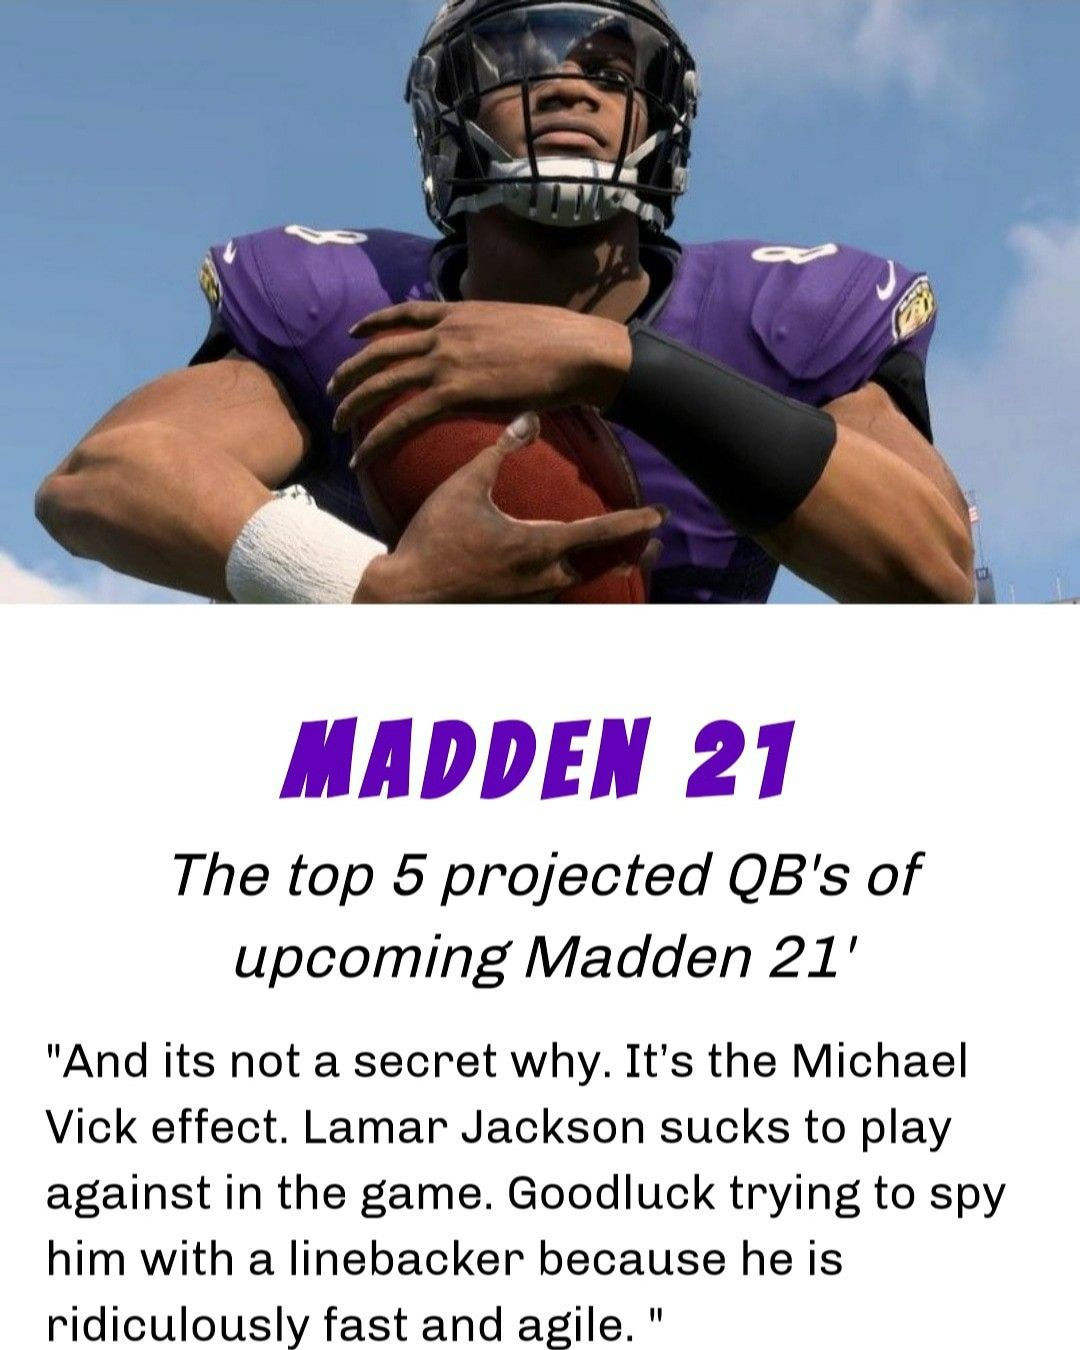 We have ranked the projected top 5 Qb's in the upcoming Madden 21'